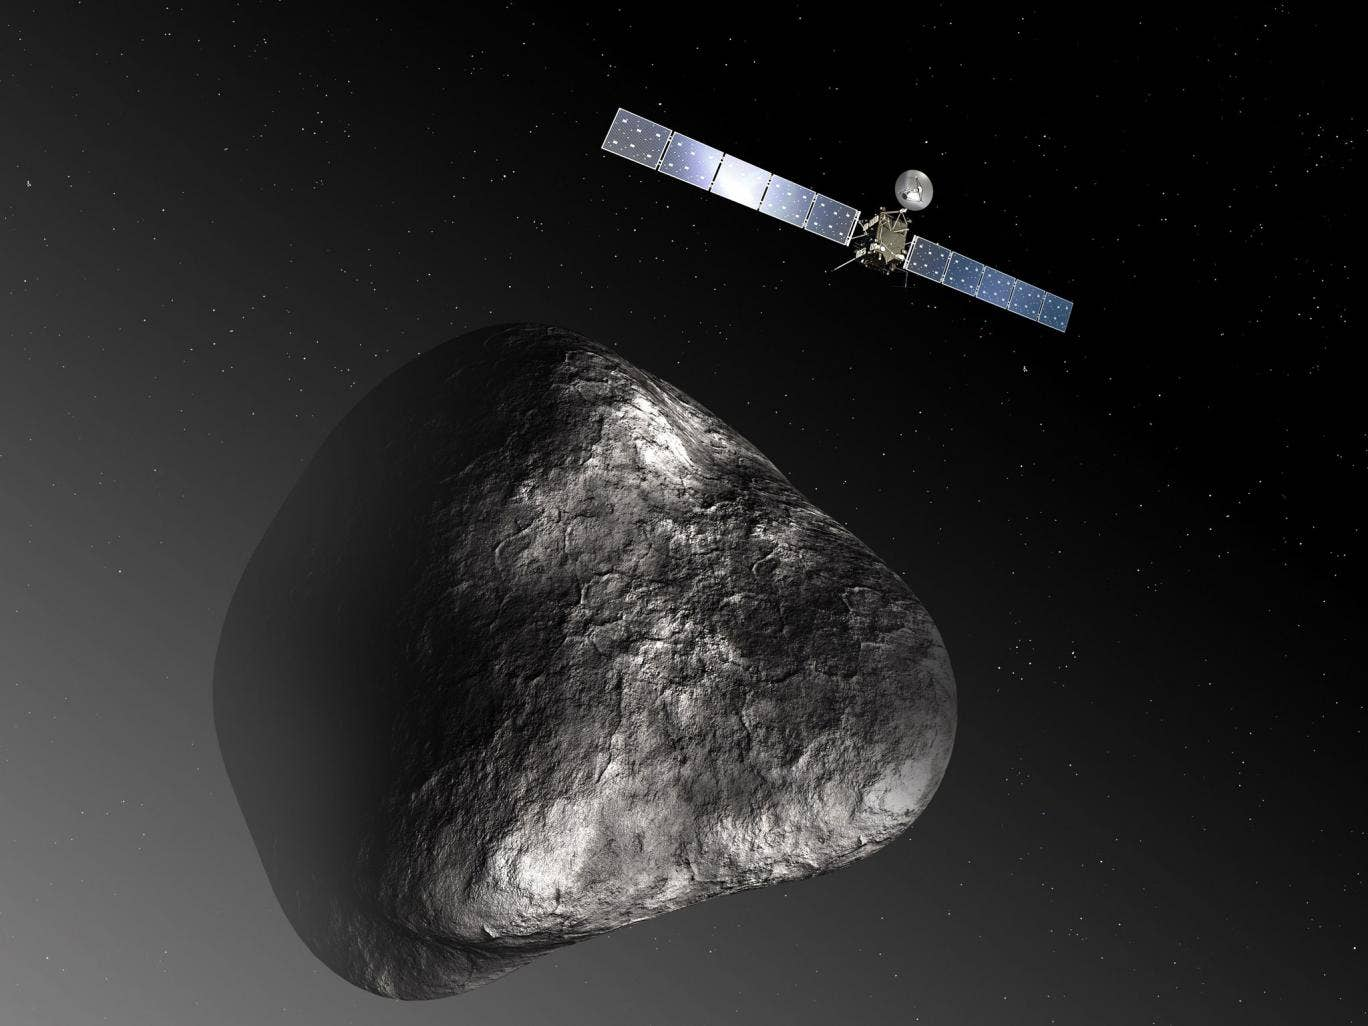 An artist's impression of the unmanned 'Rosetta', which is expected be the first spacecraft to land on the surface of a comet